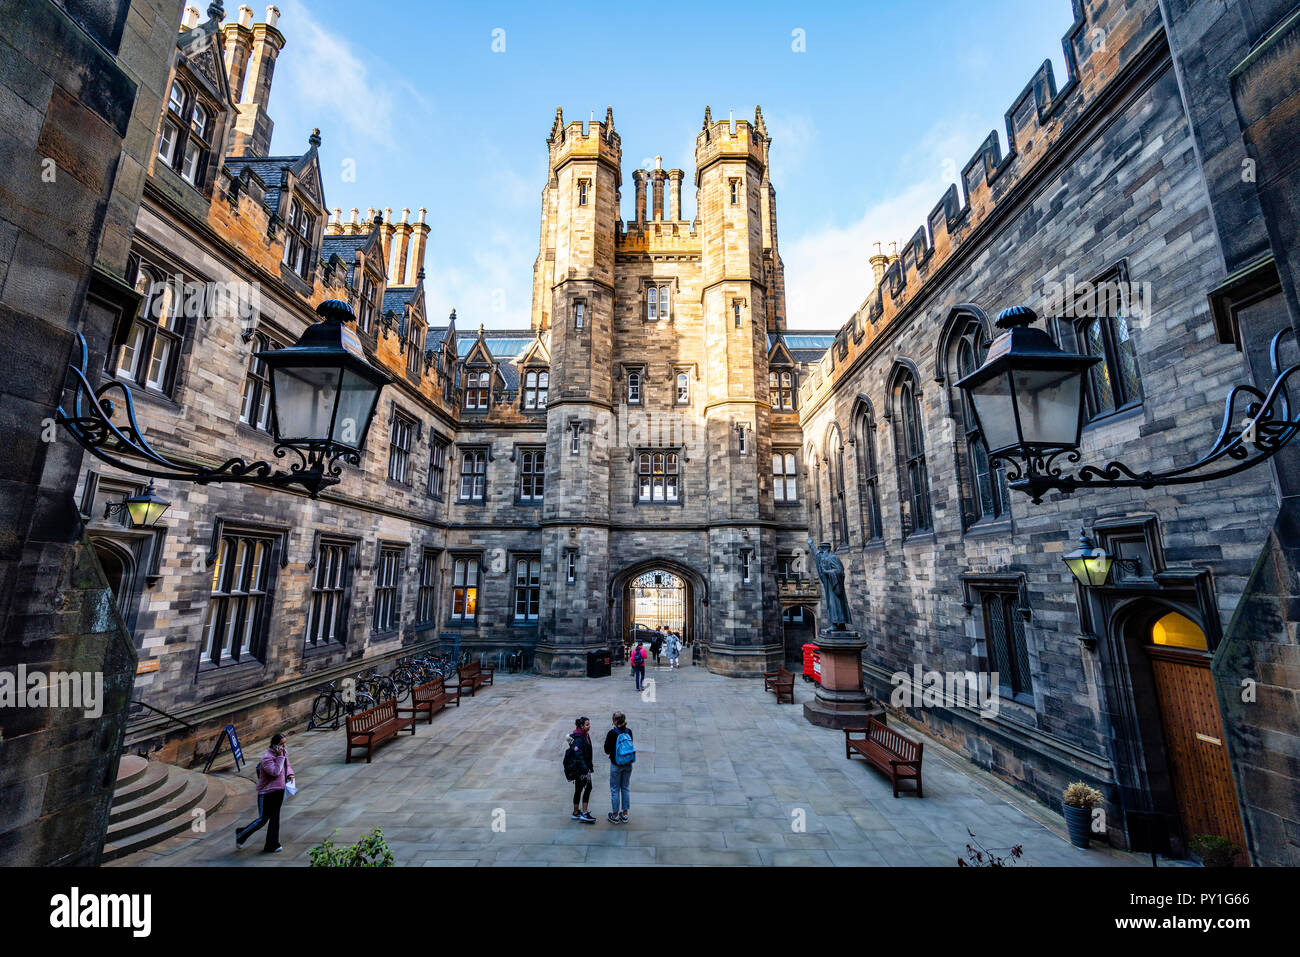 View of the courtyard of New College at the University of Edinburgh, the Faculty of Divinity, on The Mound in Edinburgh Old Town, Scotland, UK - Stock Image